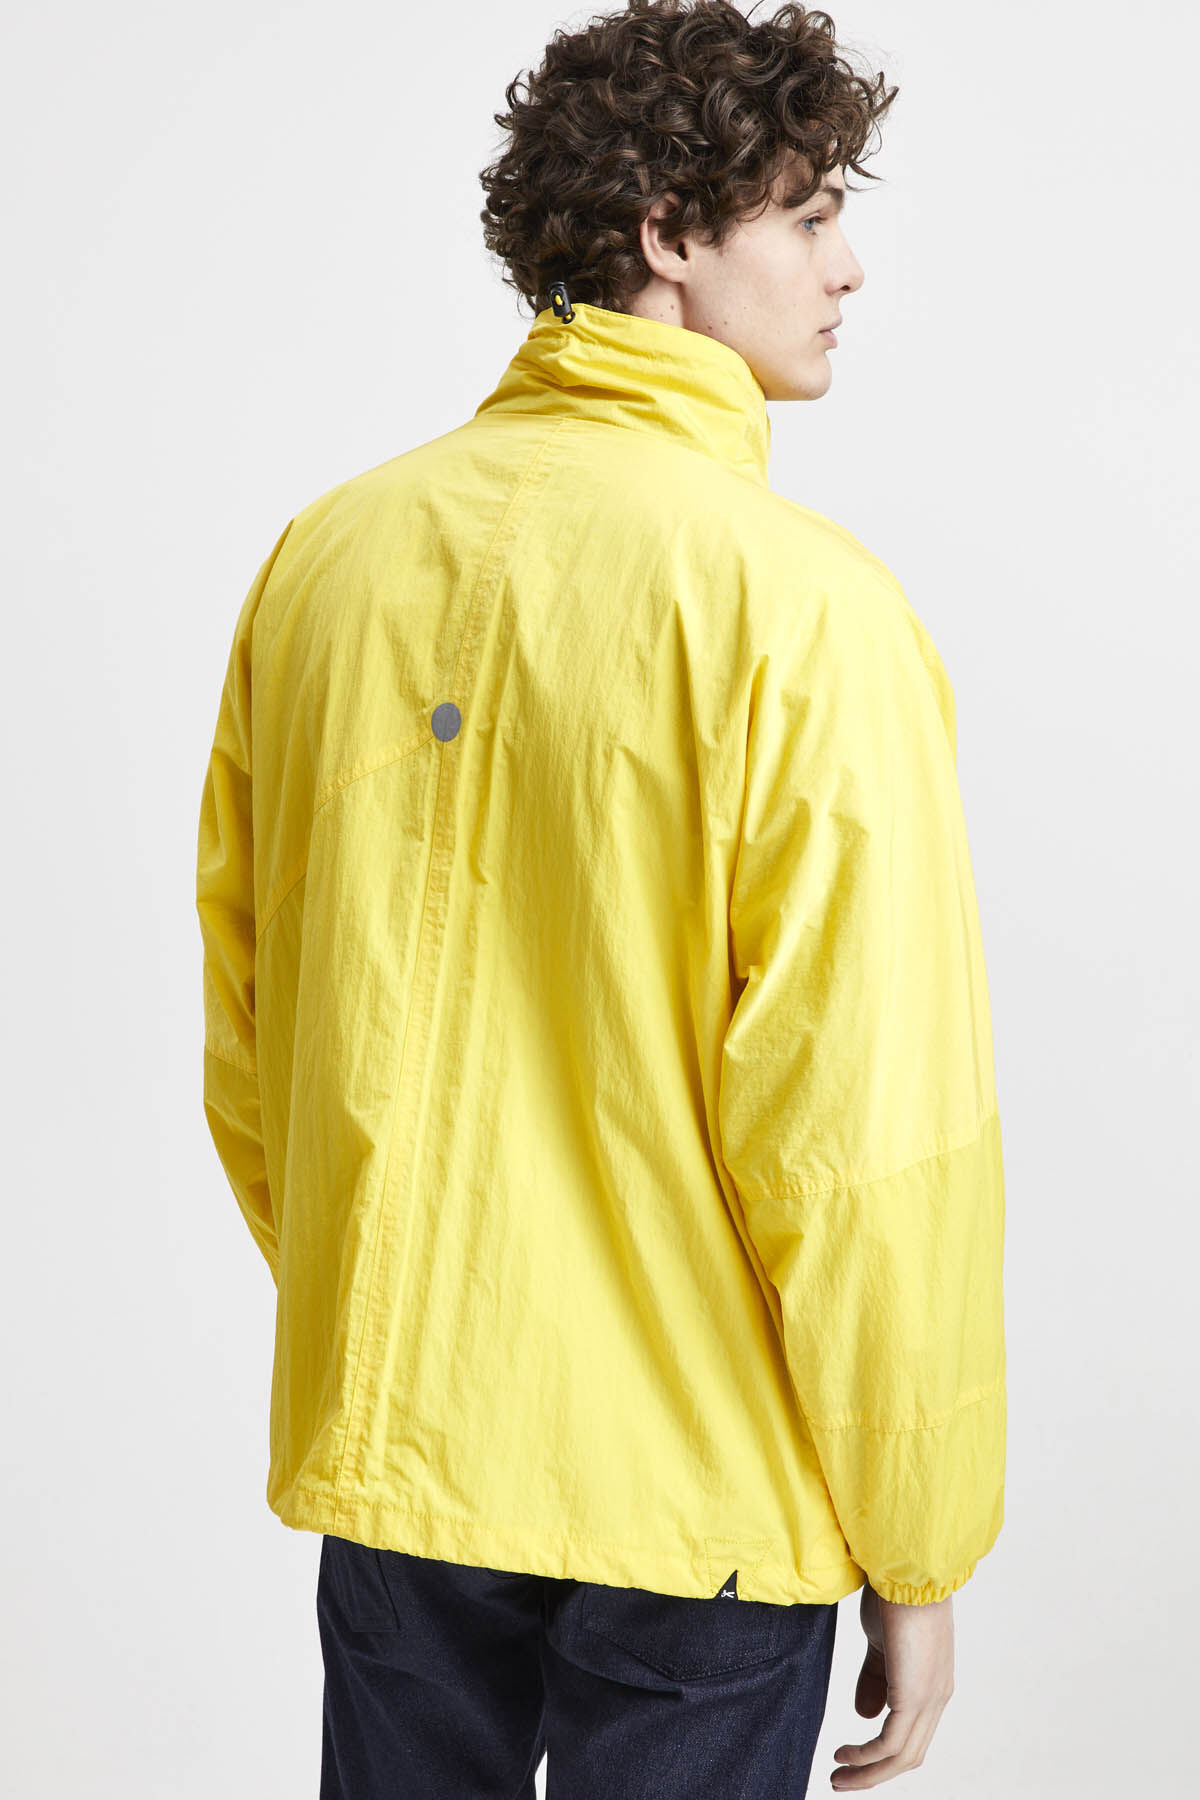 DRONE JACKET Light Weight - Oversized Fit